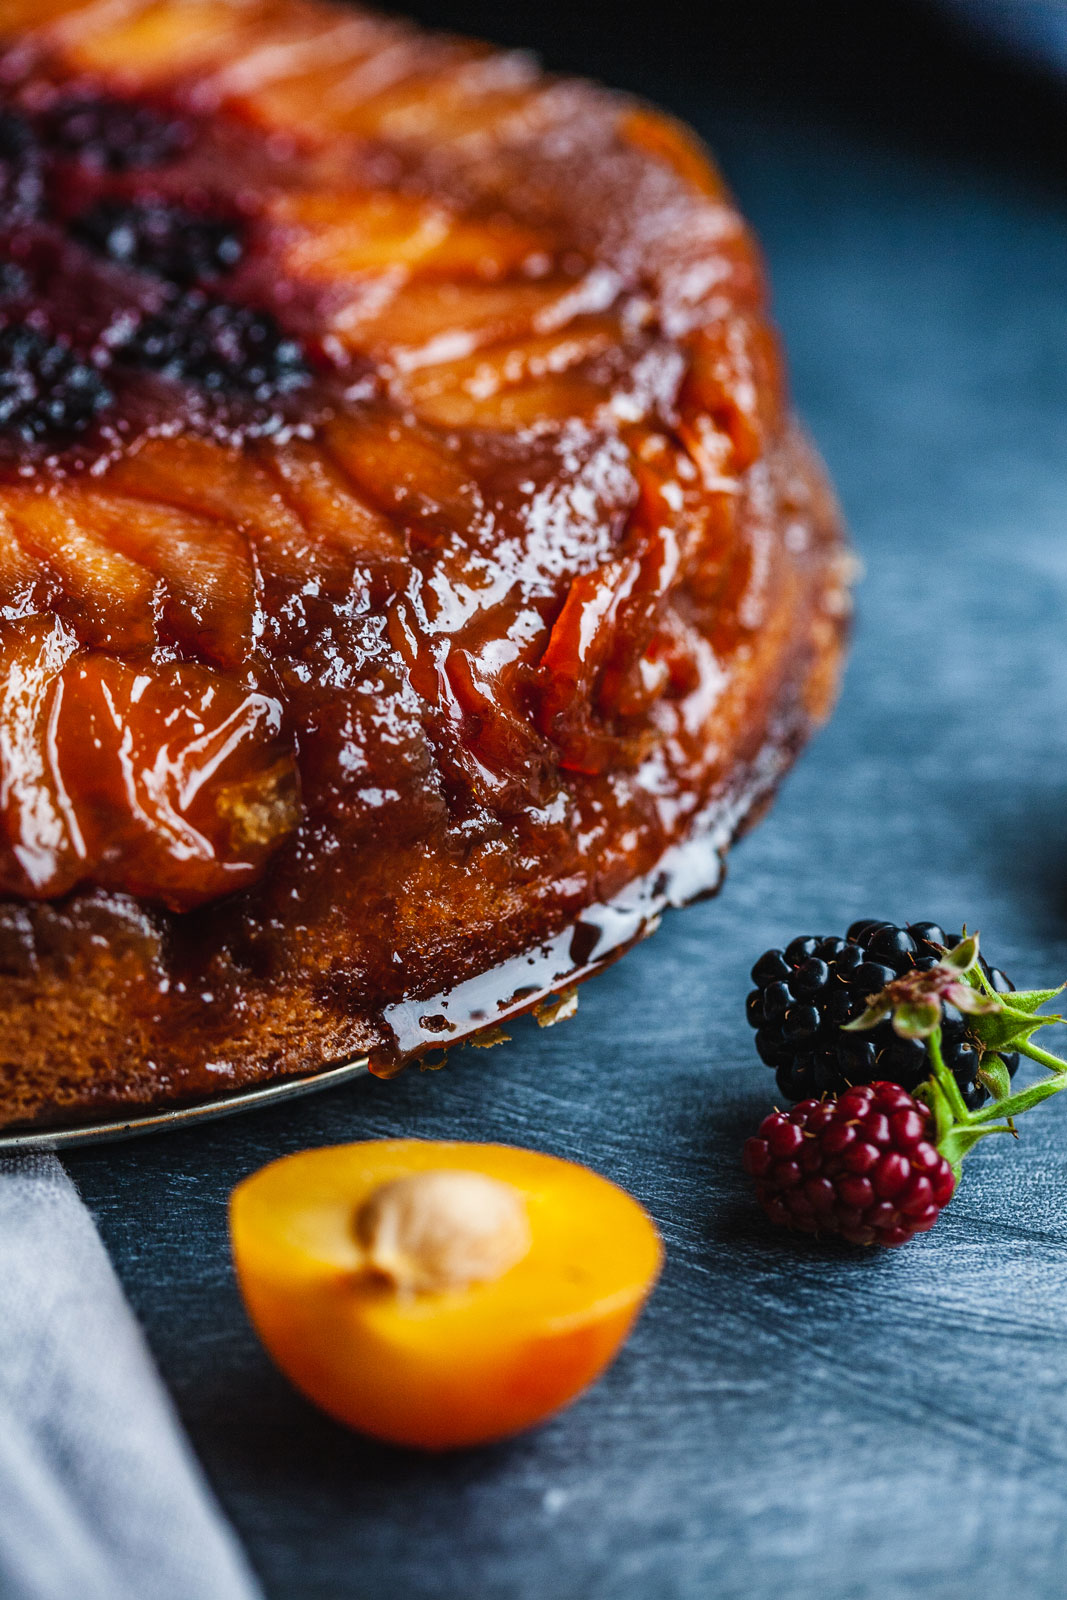 Lemony Plum And Blackberry Upside Down Cake